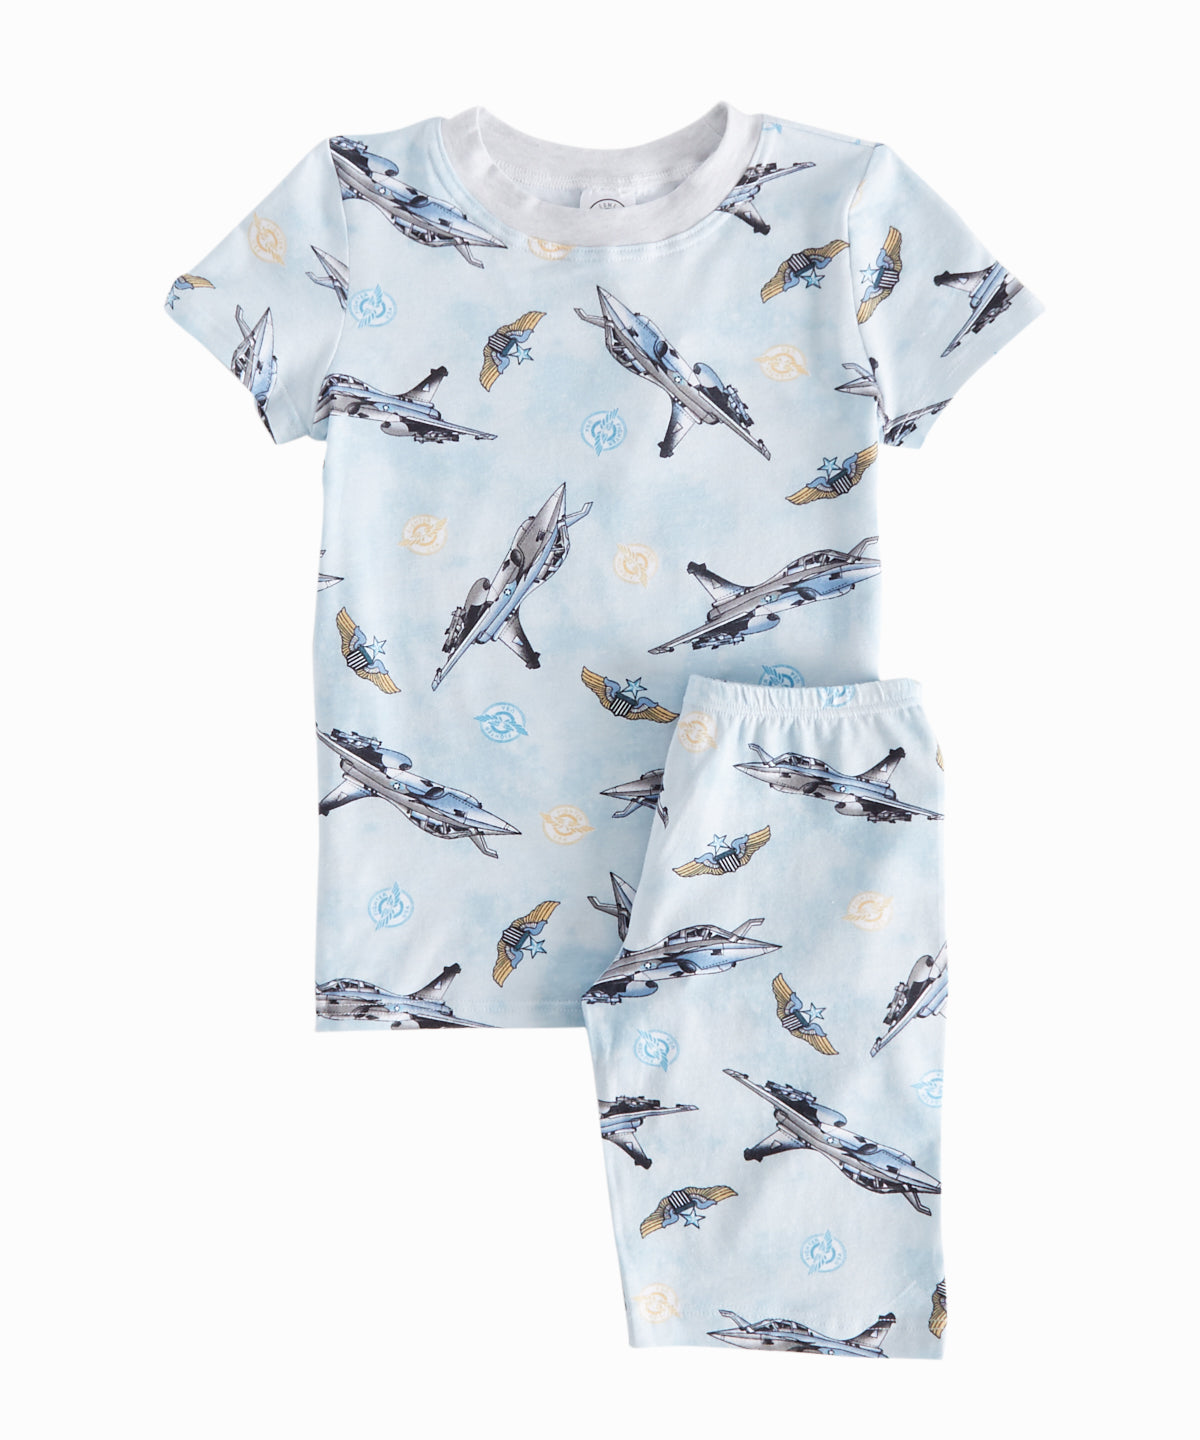 Fighter Jets Shorts PJ Set